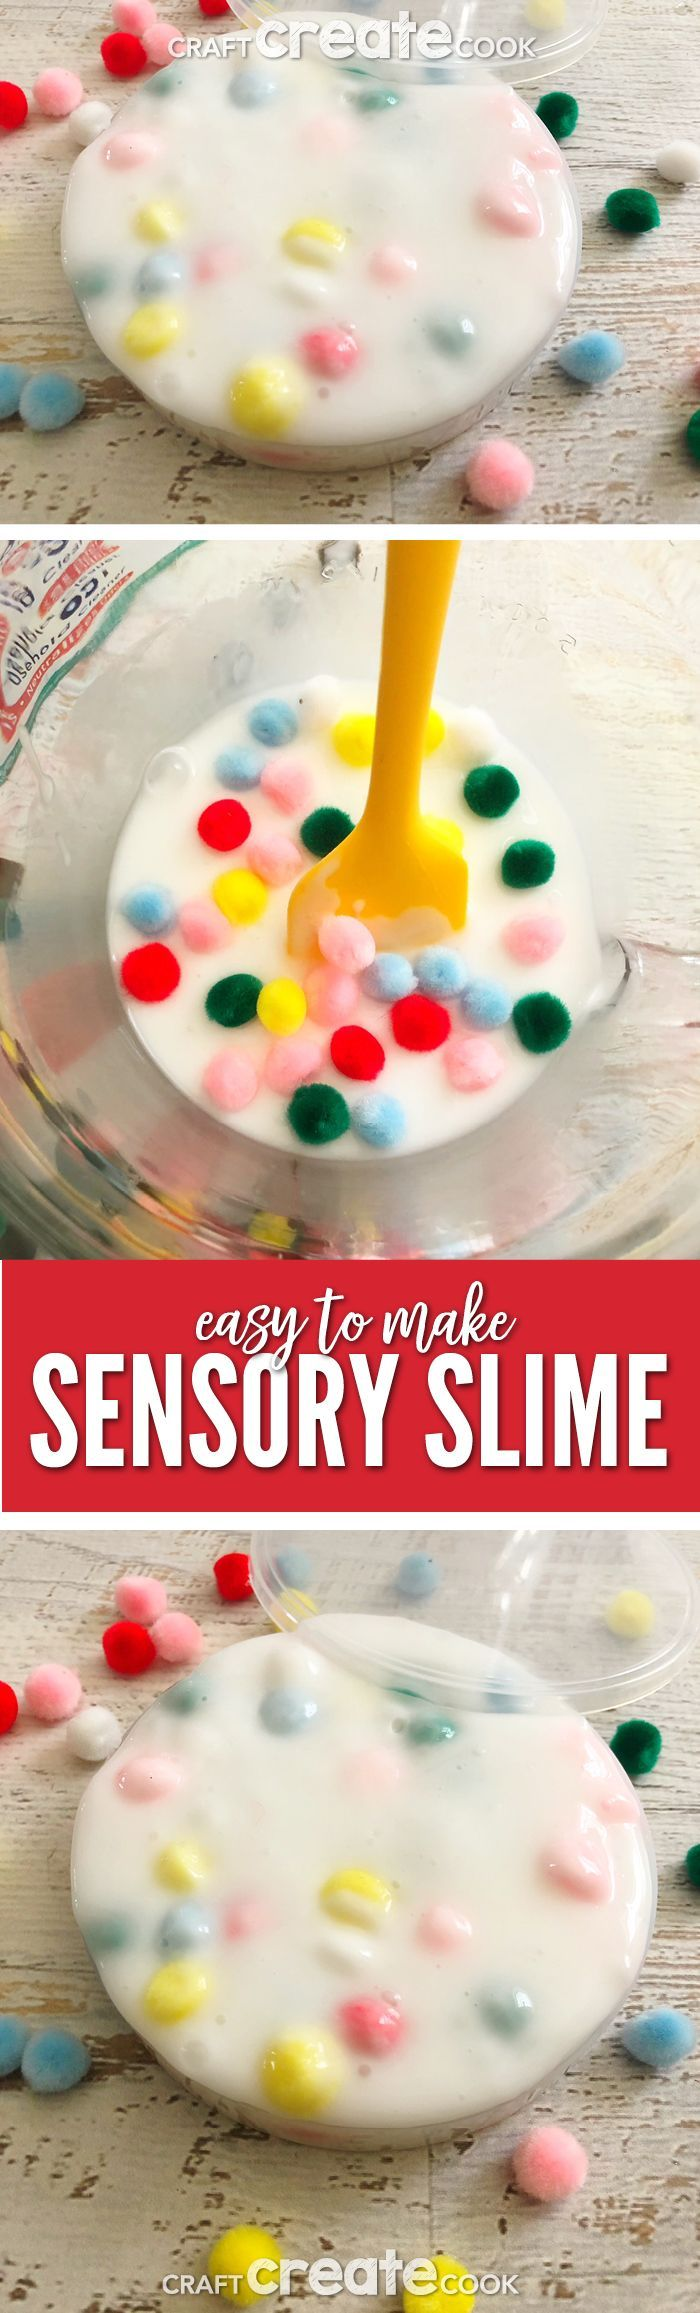 Our Sensory Slime is the perfect gooey slime with colorful pom pom balls for fun. @slime via @CraftCreatCook1